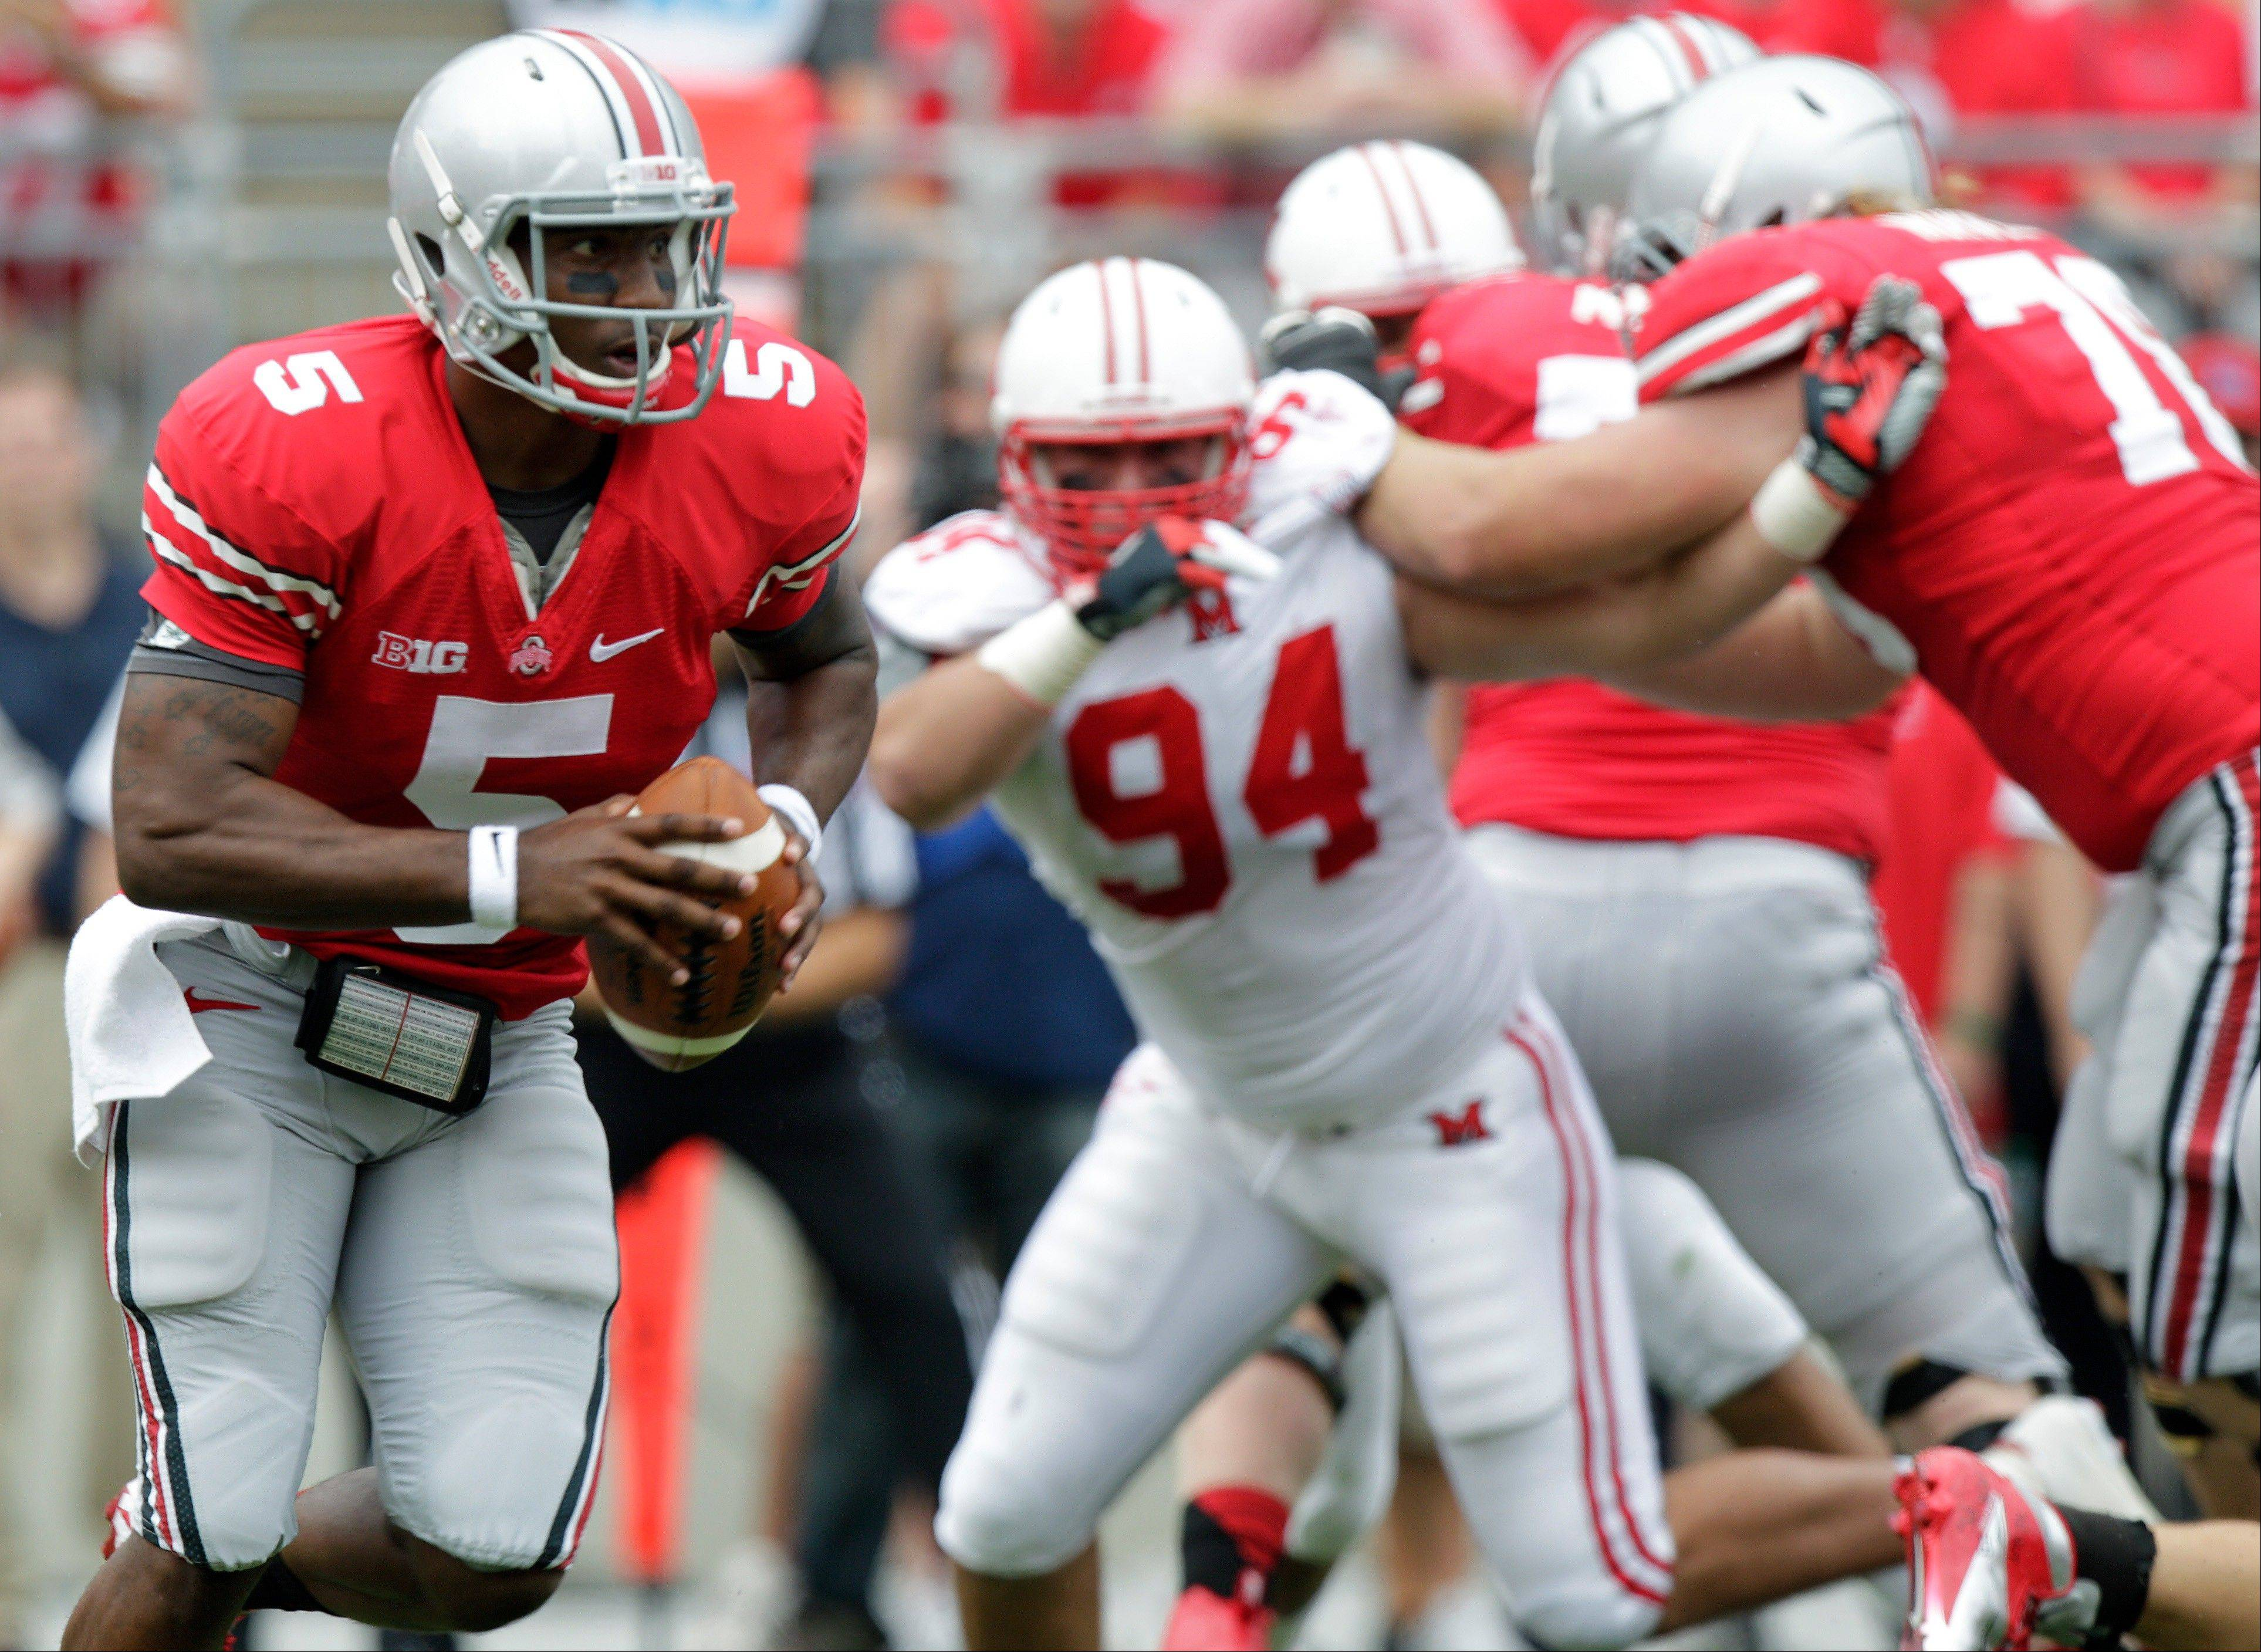 Ohio State's Braxton Miller, left, runs an option play against Miami of Ohio during the first quarter of an NCAA college football game Saturday in Columbus, Ohio. Miller rushed for 161 yards, a record for an Ohio State quarterback, and threw for two scores in their 56-10 win.